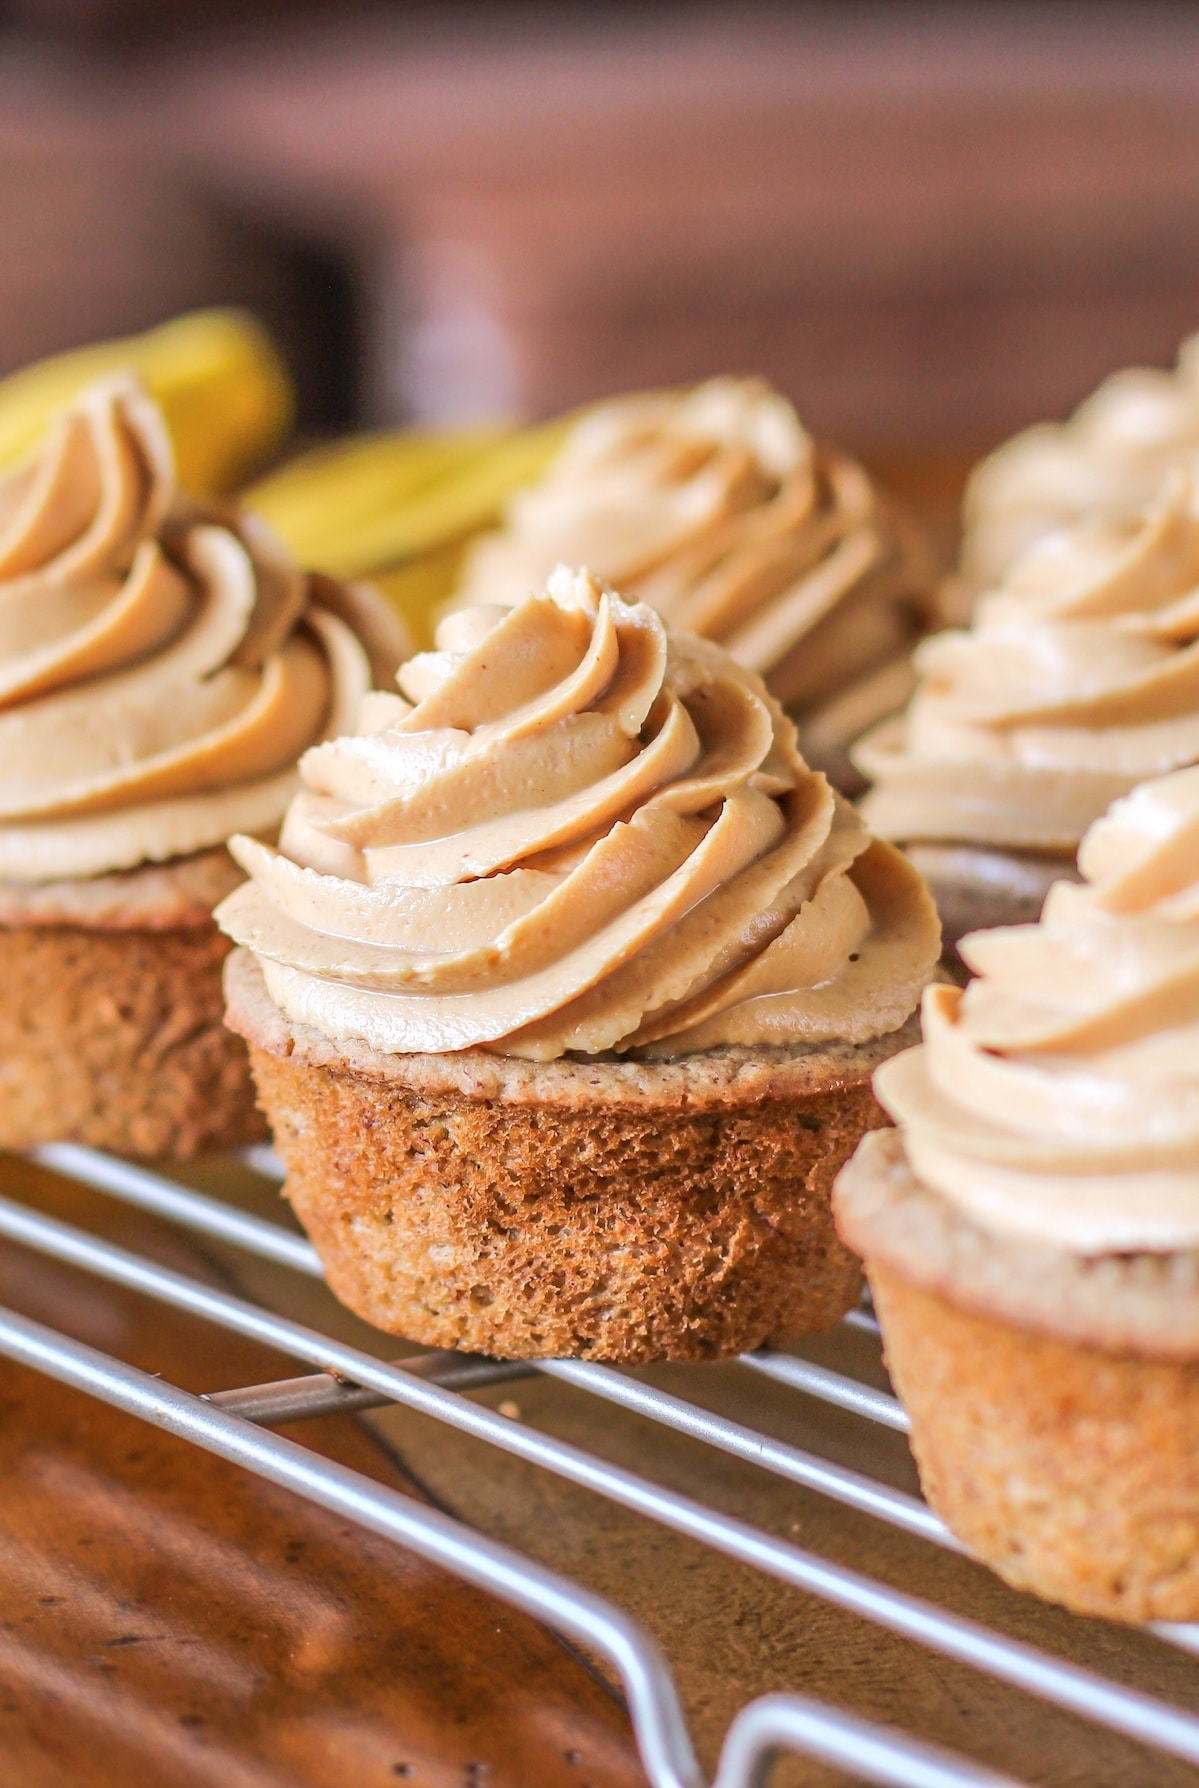 Healthy Cupcakes With Peanut Butter Frosting Desserts